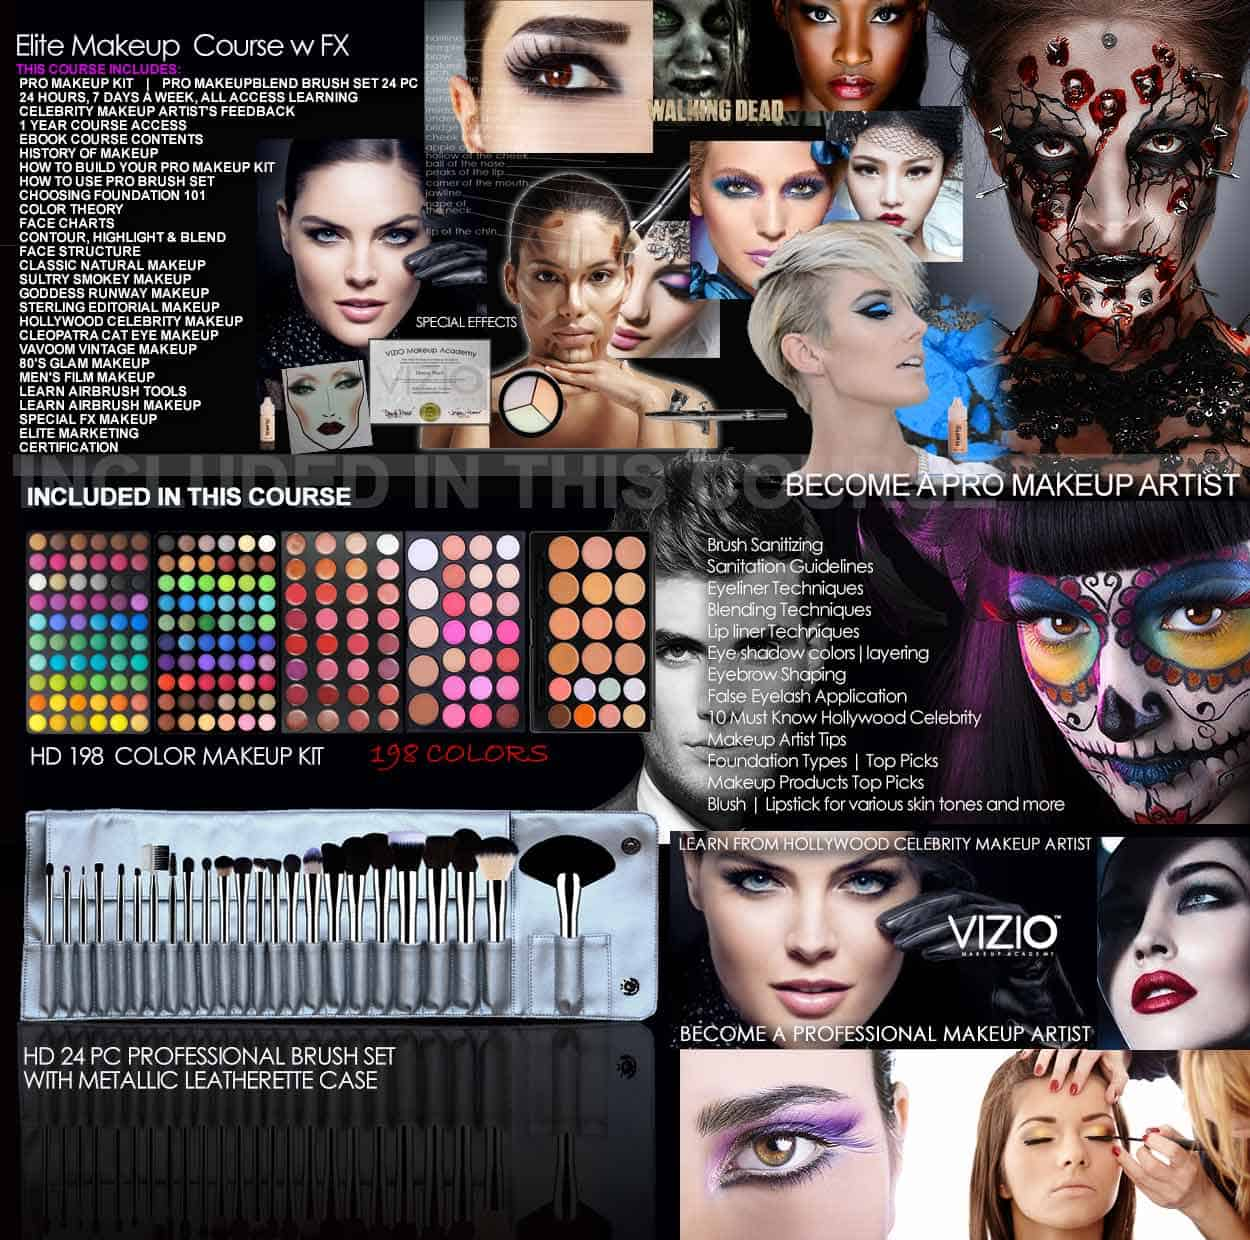 Elite Makeup Course With Fx Special Effects Makeup Online